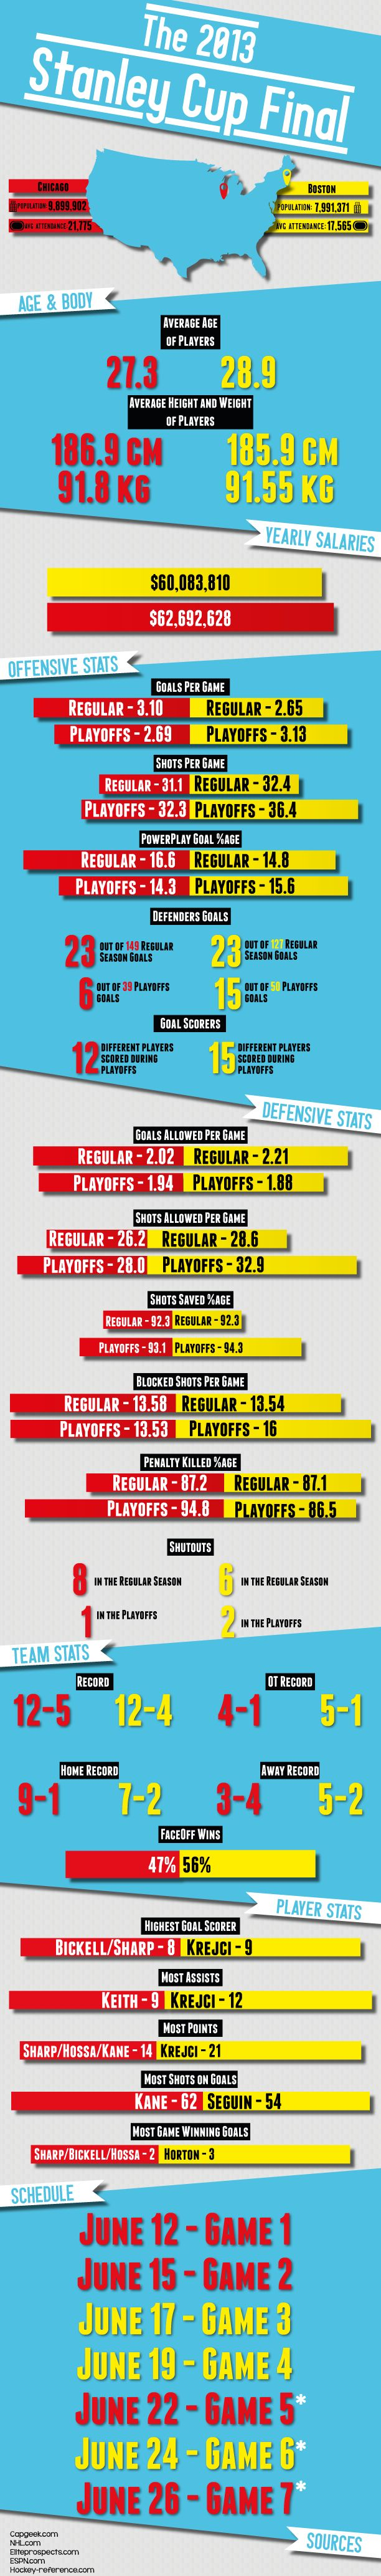 Breakdown of the 2013 Stanley Cup final match up. [INFOGRAPHIC]